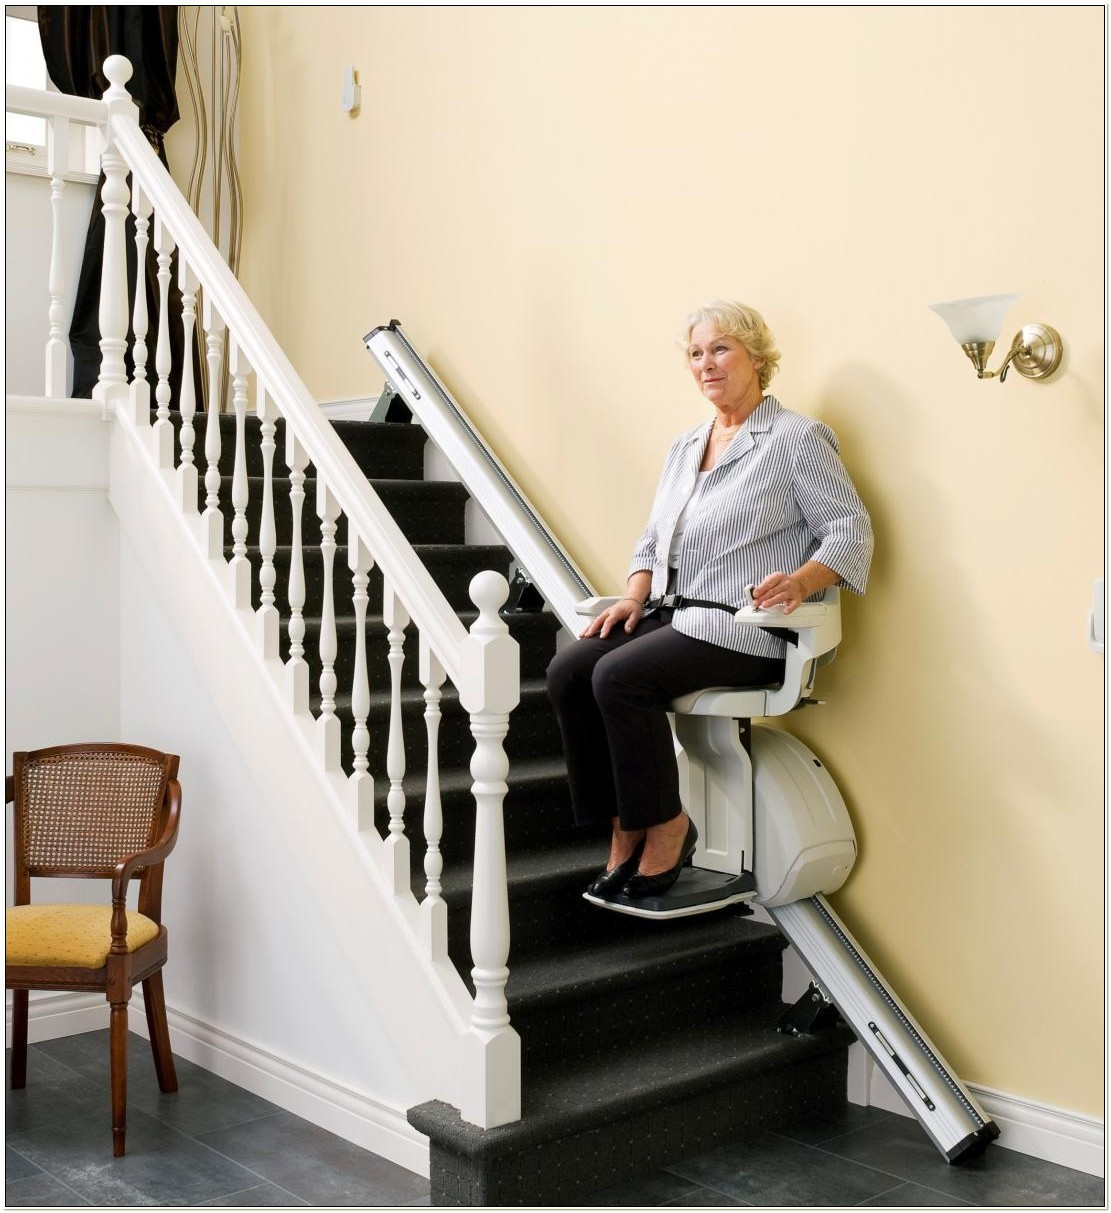 Power Chair Lift For Stairs